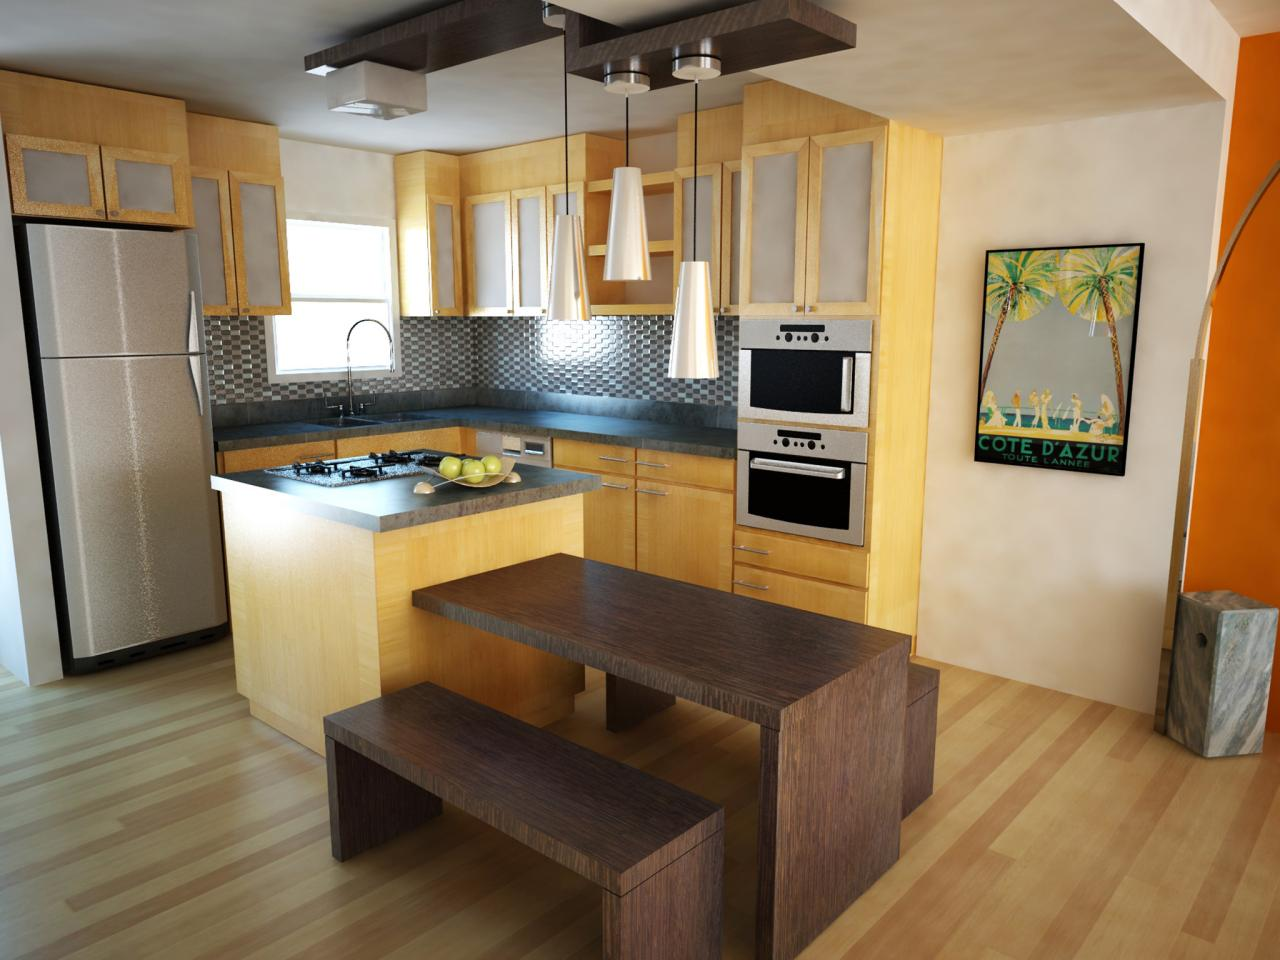 How to add kitchen islands for small kitchens